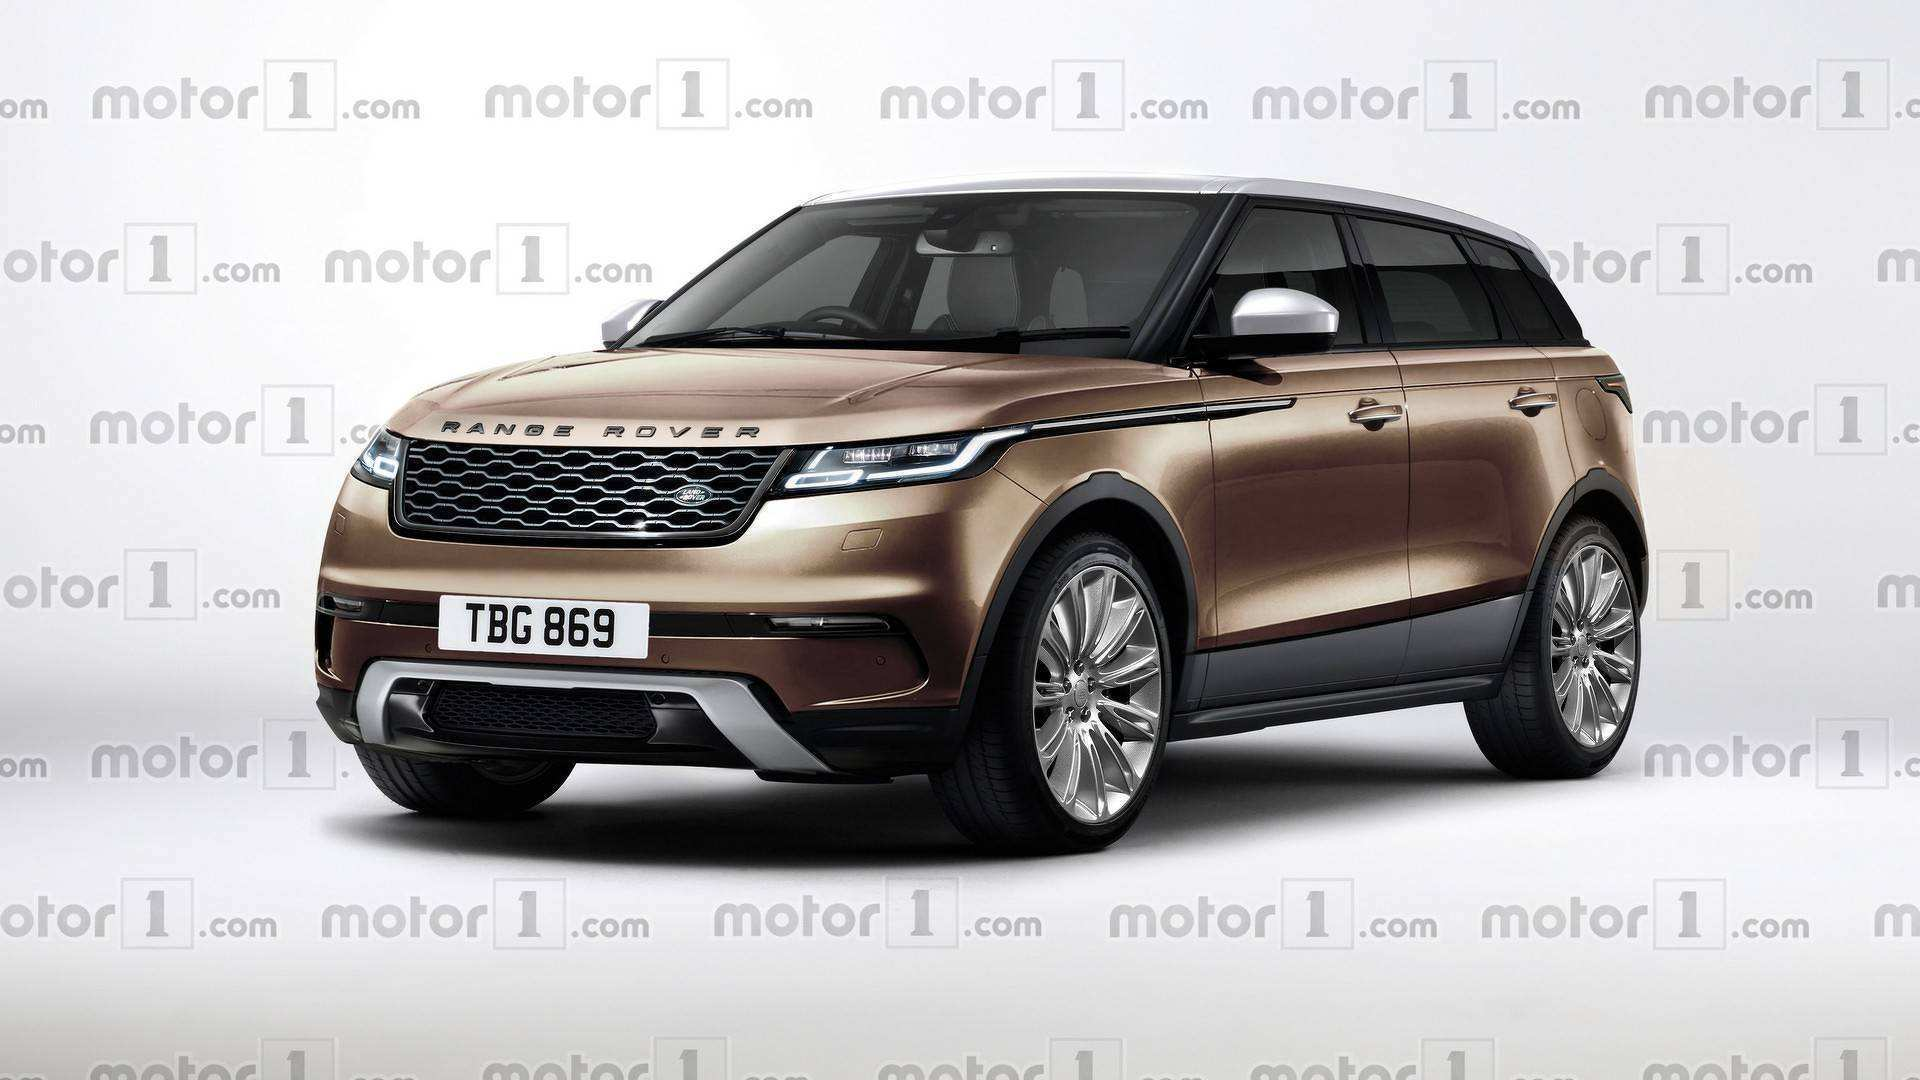 94 Best Review New Land Rover Evoque 2019 Specs and Review with New Land Rover Evoque 2019